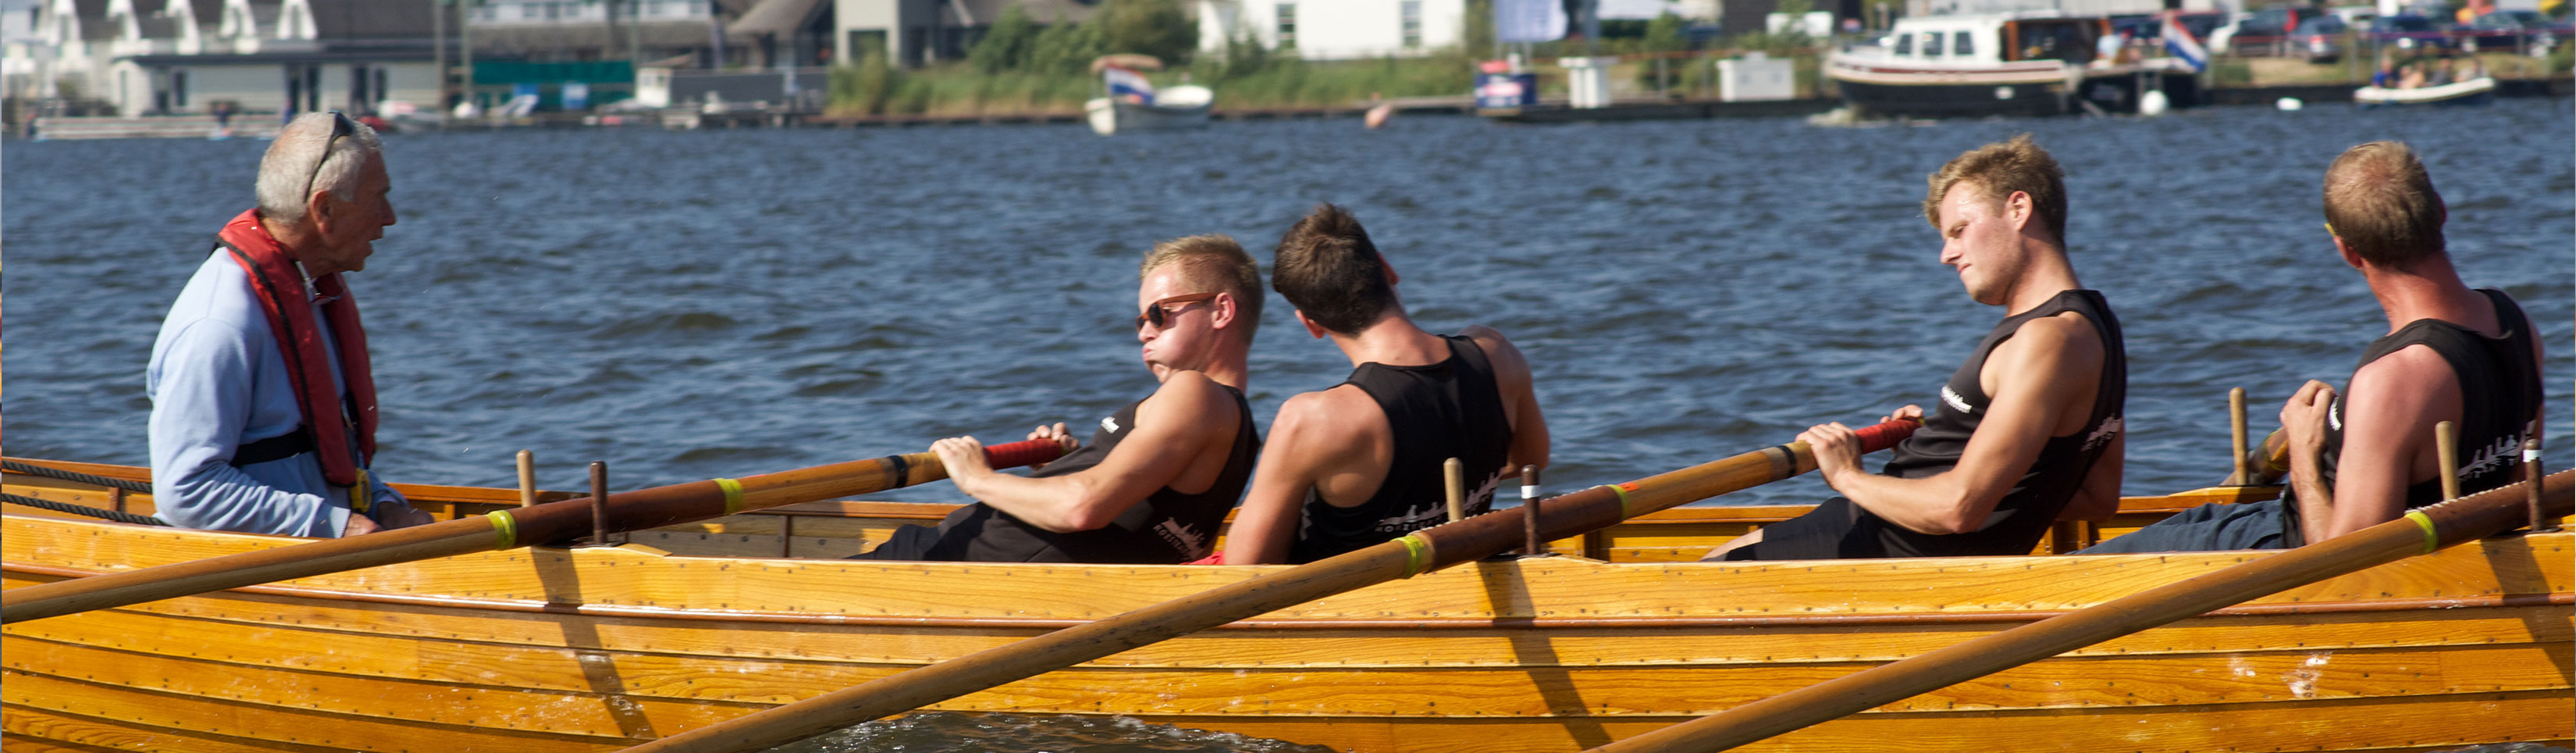 Register now for the EuroCup Pilot Gig Rowing.